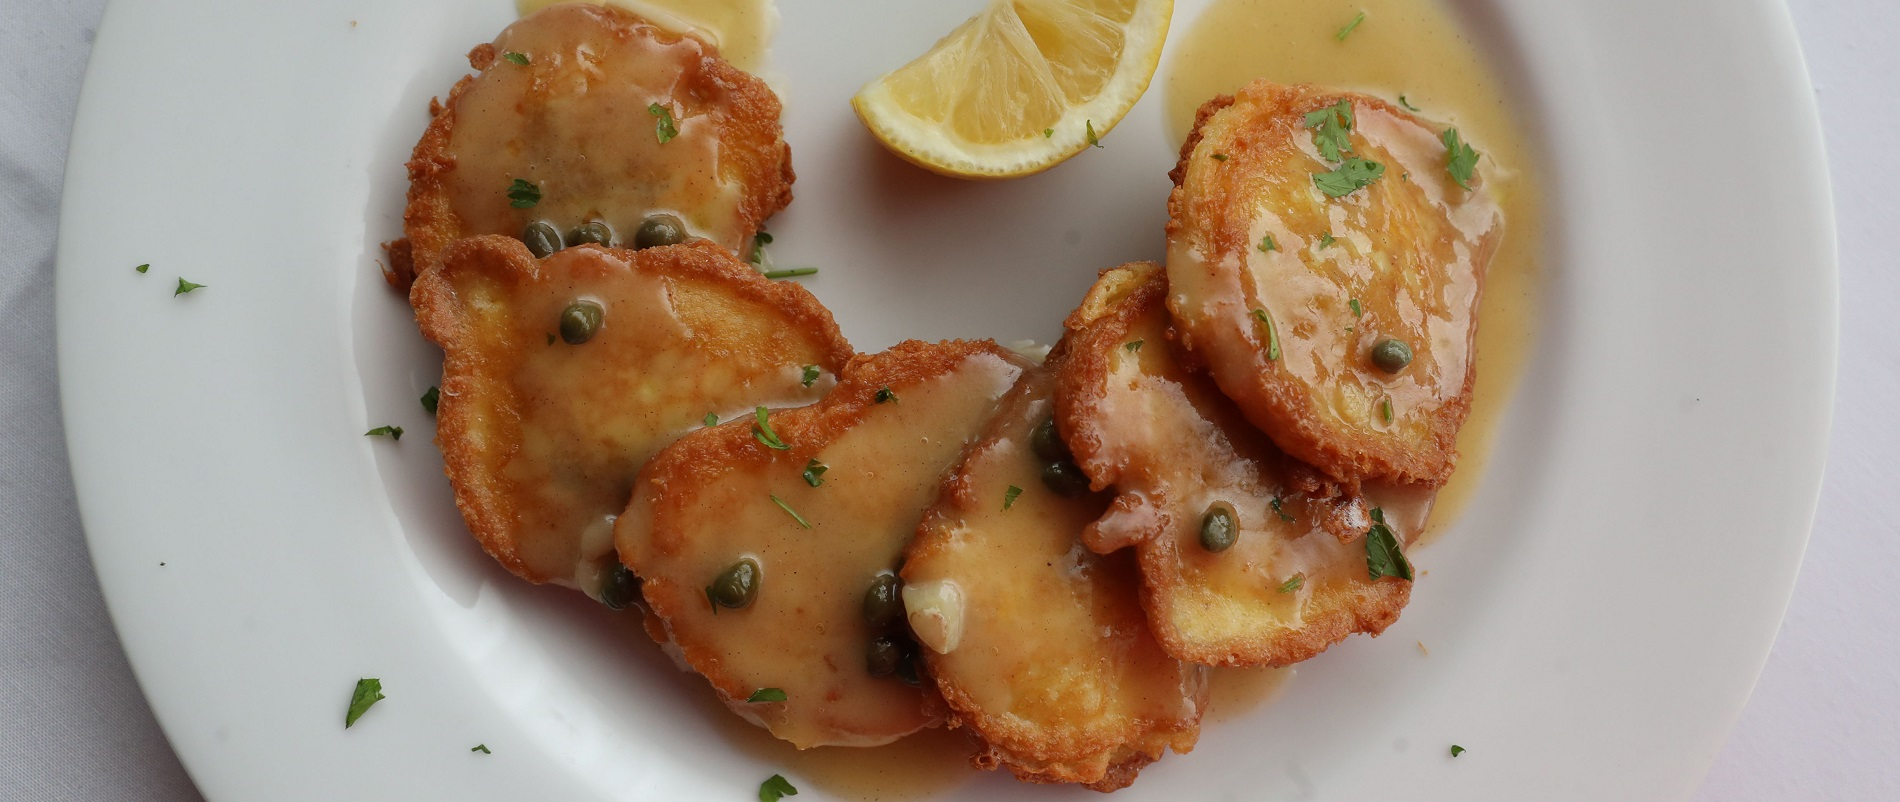 Of the Artichoke Francese at Sinatra's, News Food Editor Andrew Z. Galarneau writes, 'Artichoke hearts in puffy Romano-stuffed jackets, napped with velvety butter-lemon sauce perked up with capers, were pitch perfect.' (Sharon Cantillon/Buffalo News)